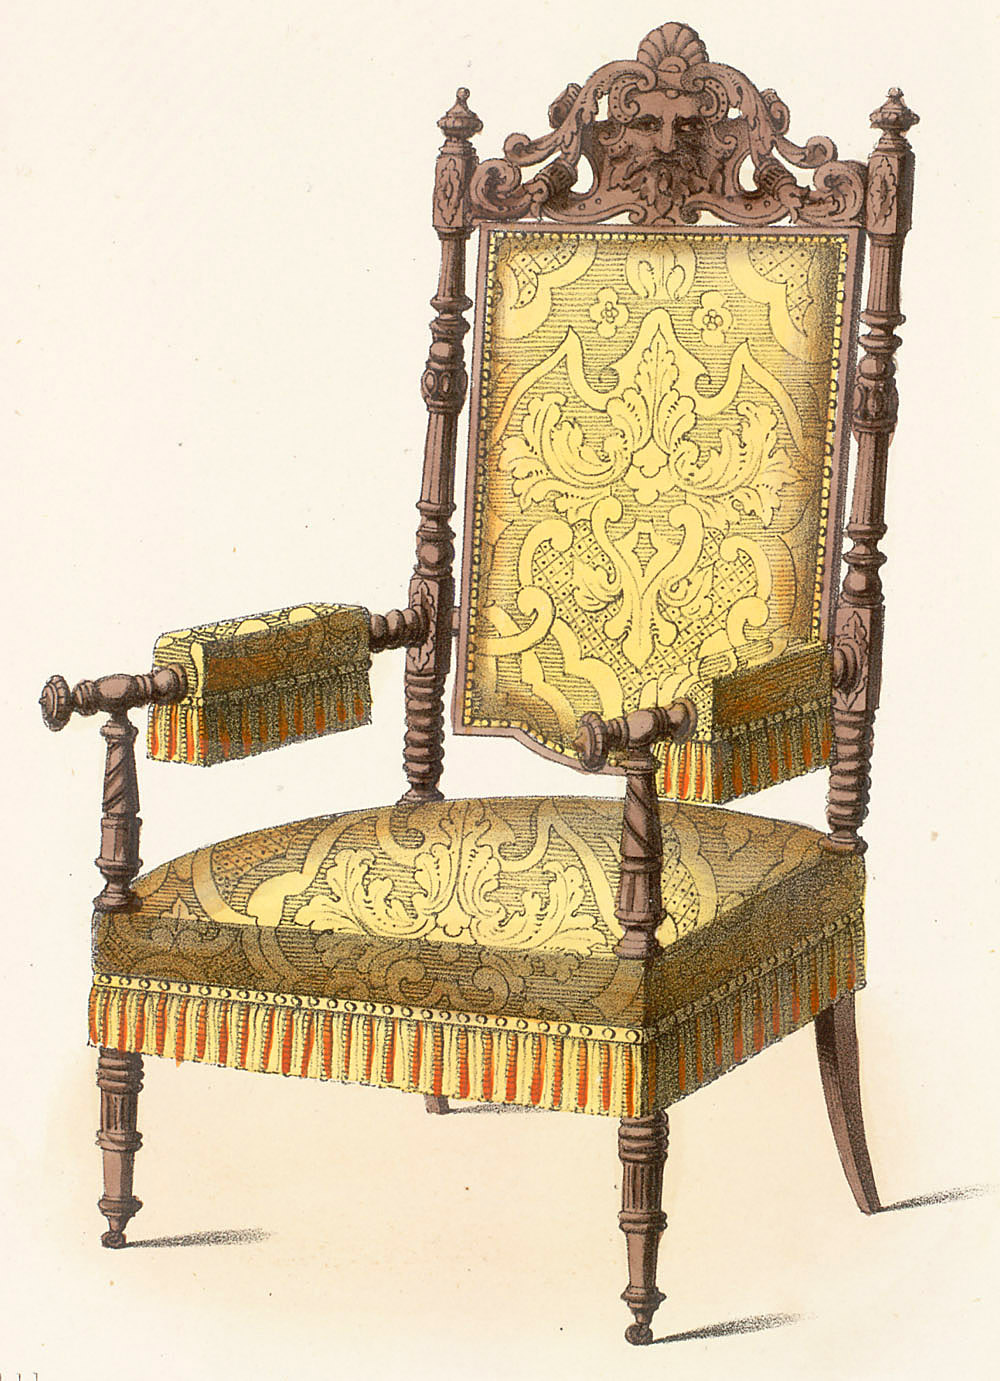 Awesome Chairs : Armchairs Style: Renaissance Revival Enlarge Image